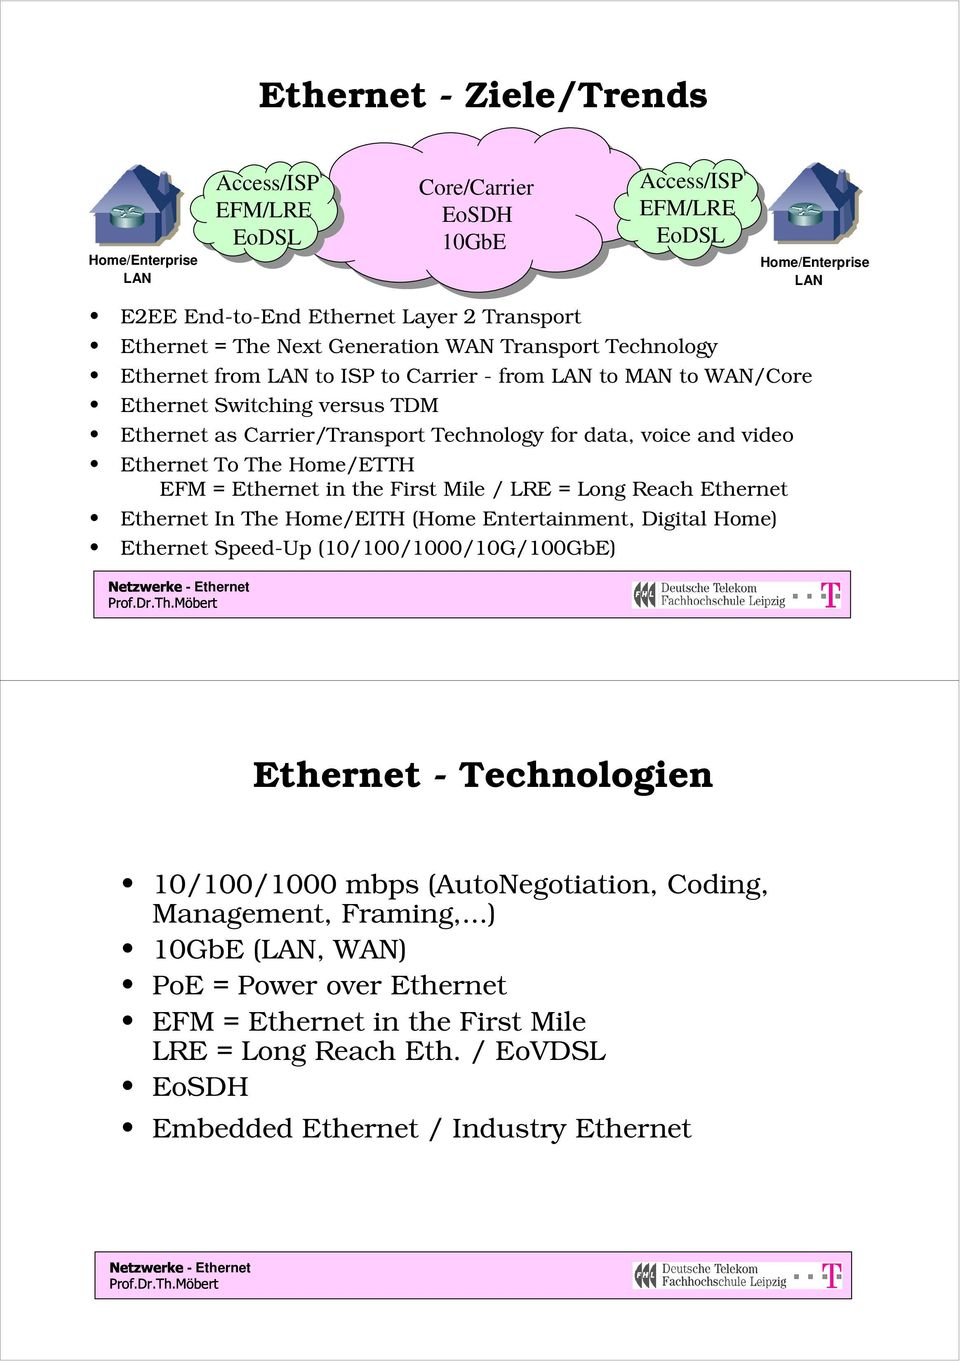 video Ethernet To The Home/ETTH EFM = Ethernet in the First Mile / LRE = Long Reach Ethernet Ethernet In The Home/EITH (Home Entertainment, Digital Home) Ethernet Speed-Up (10/100/1000/10G/100GbE)